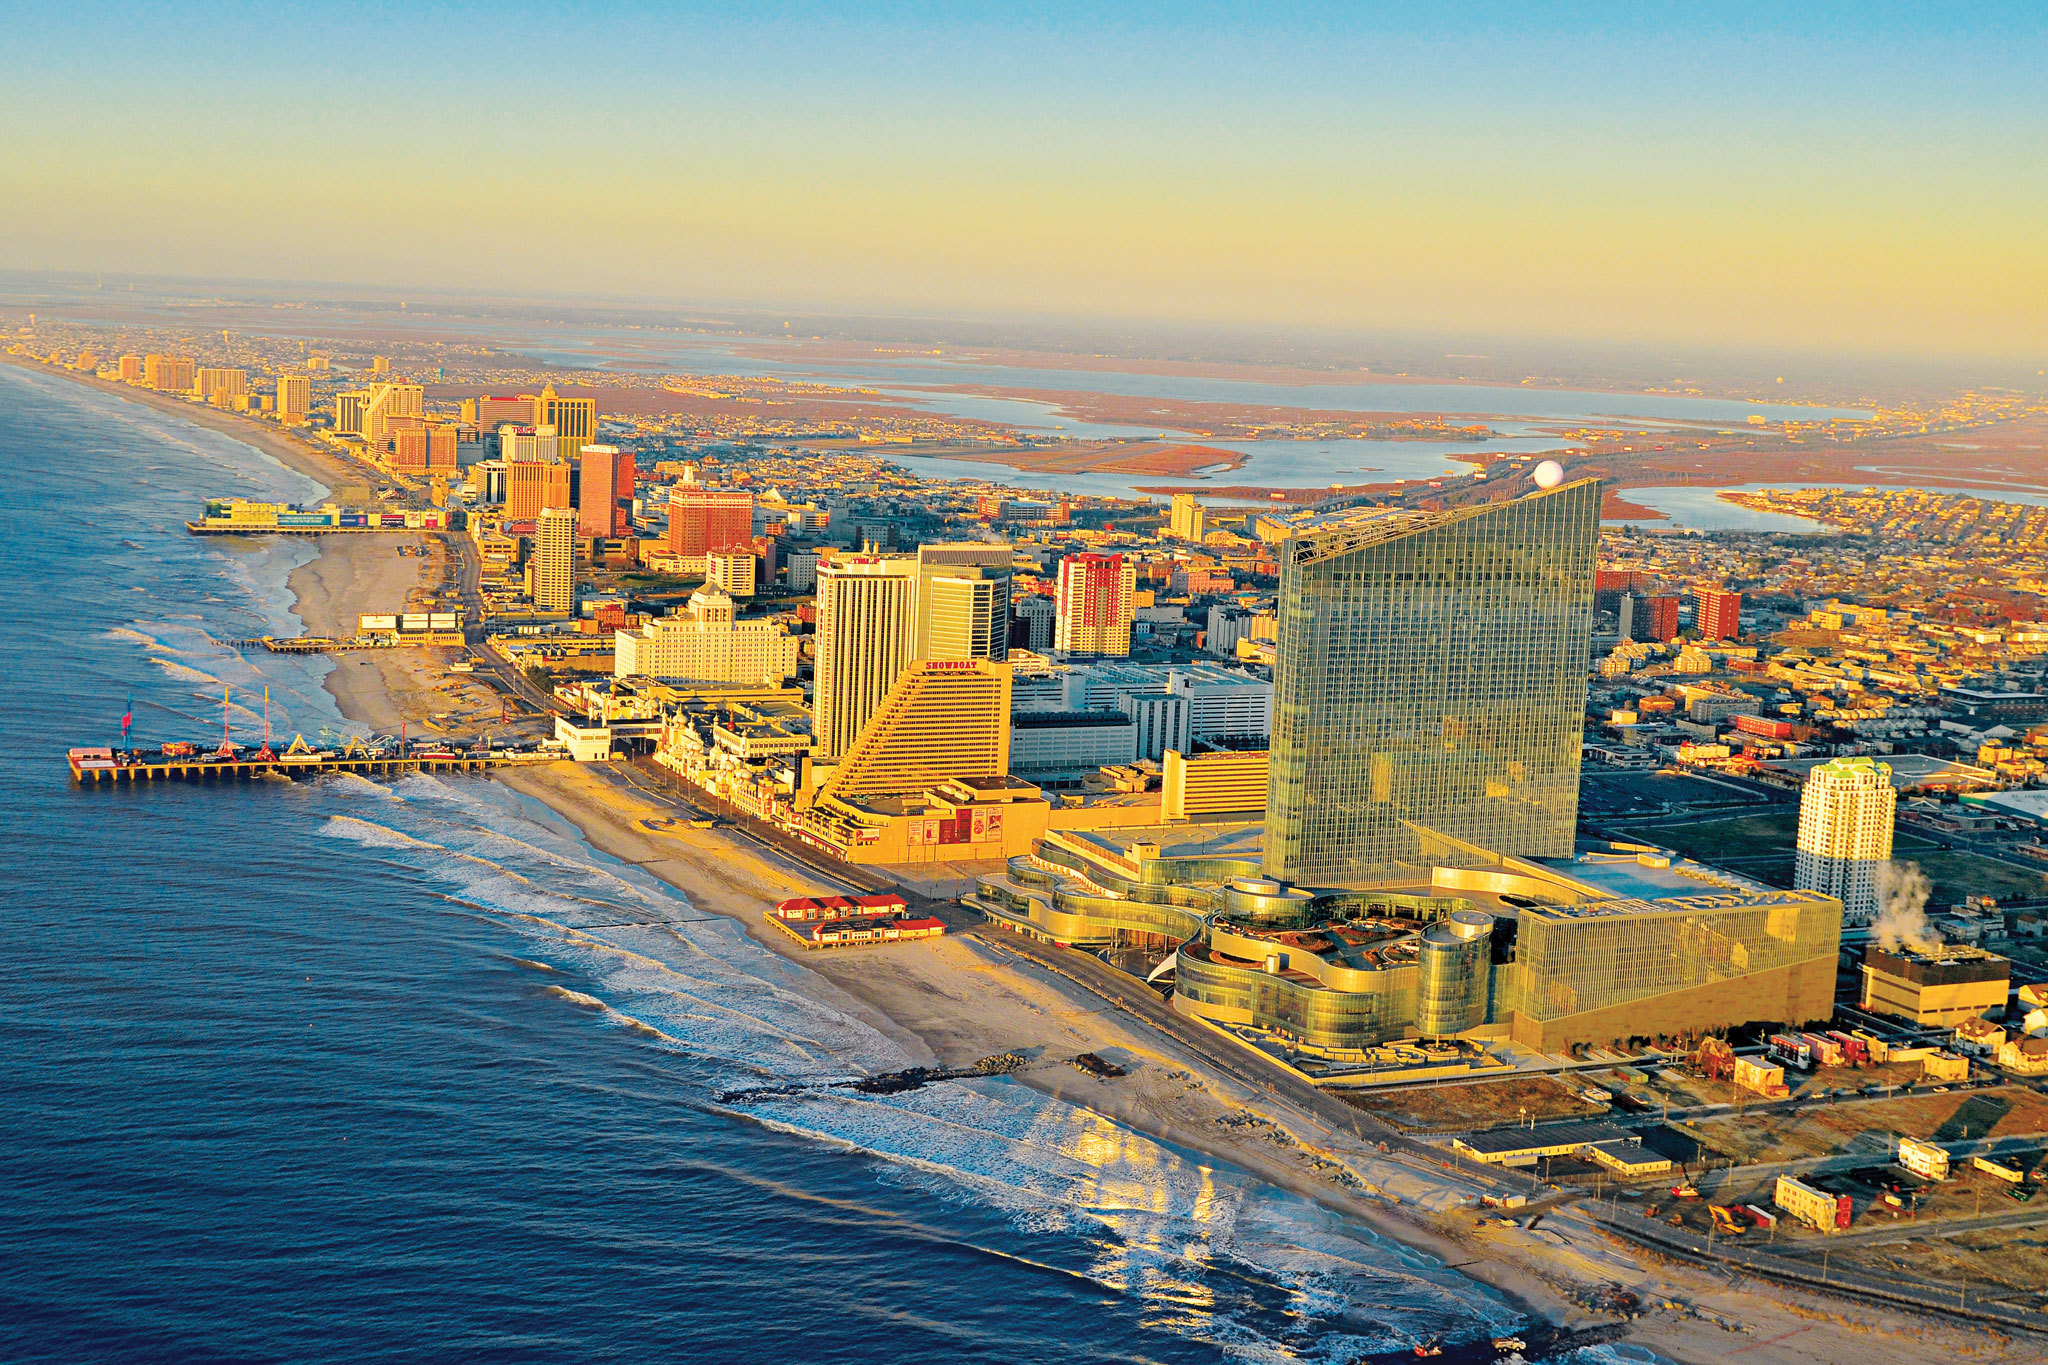 One Atlantic City